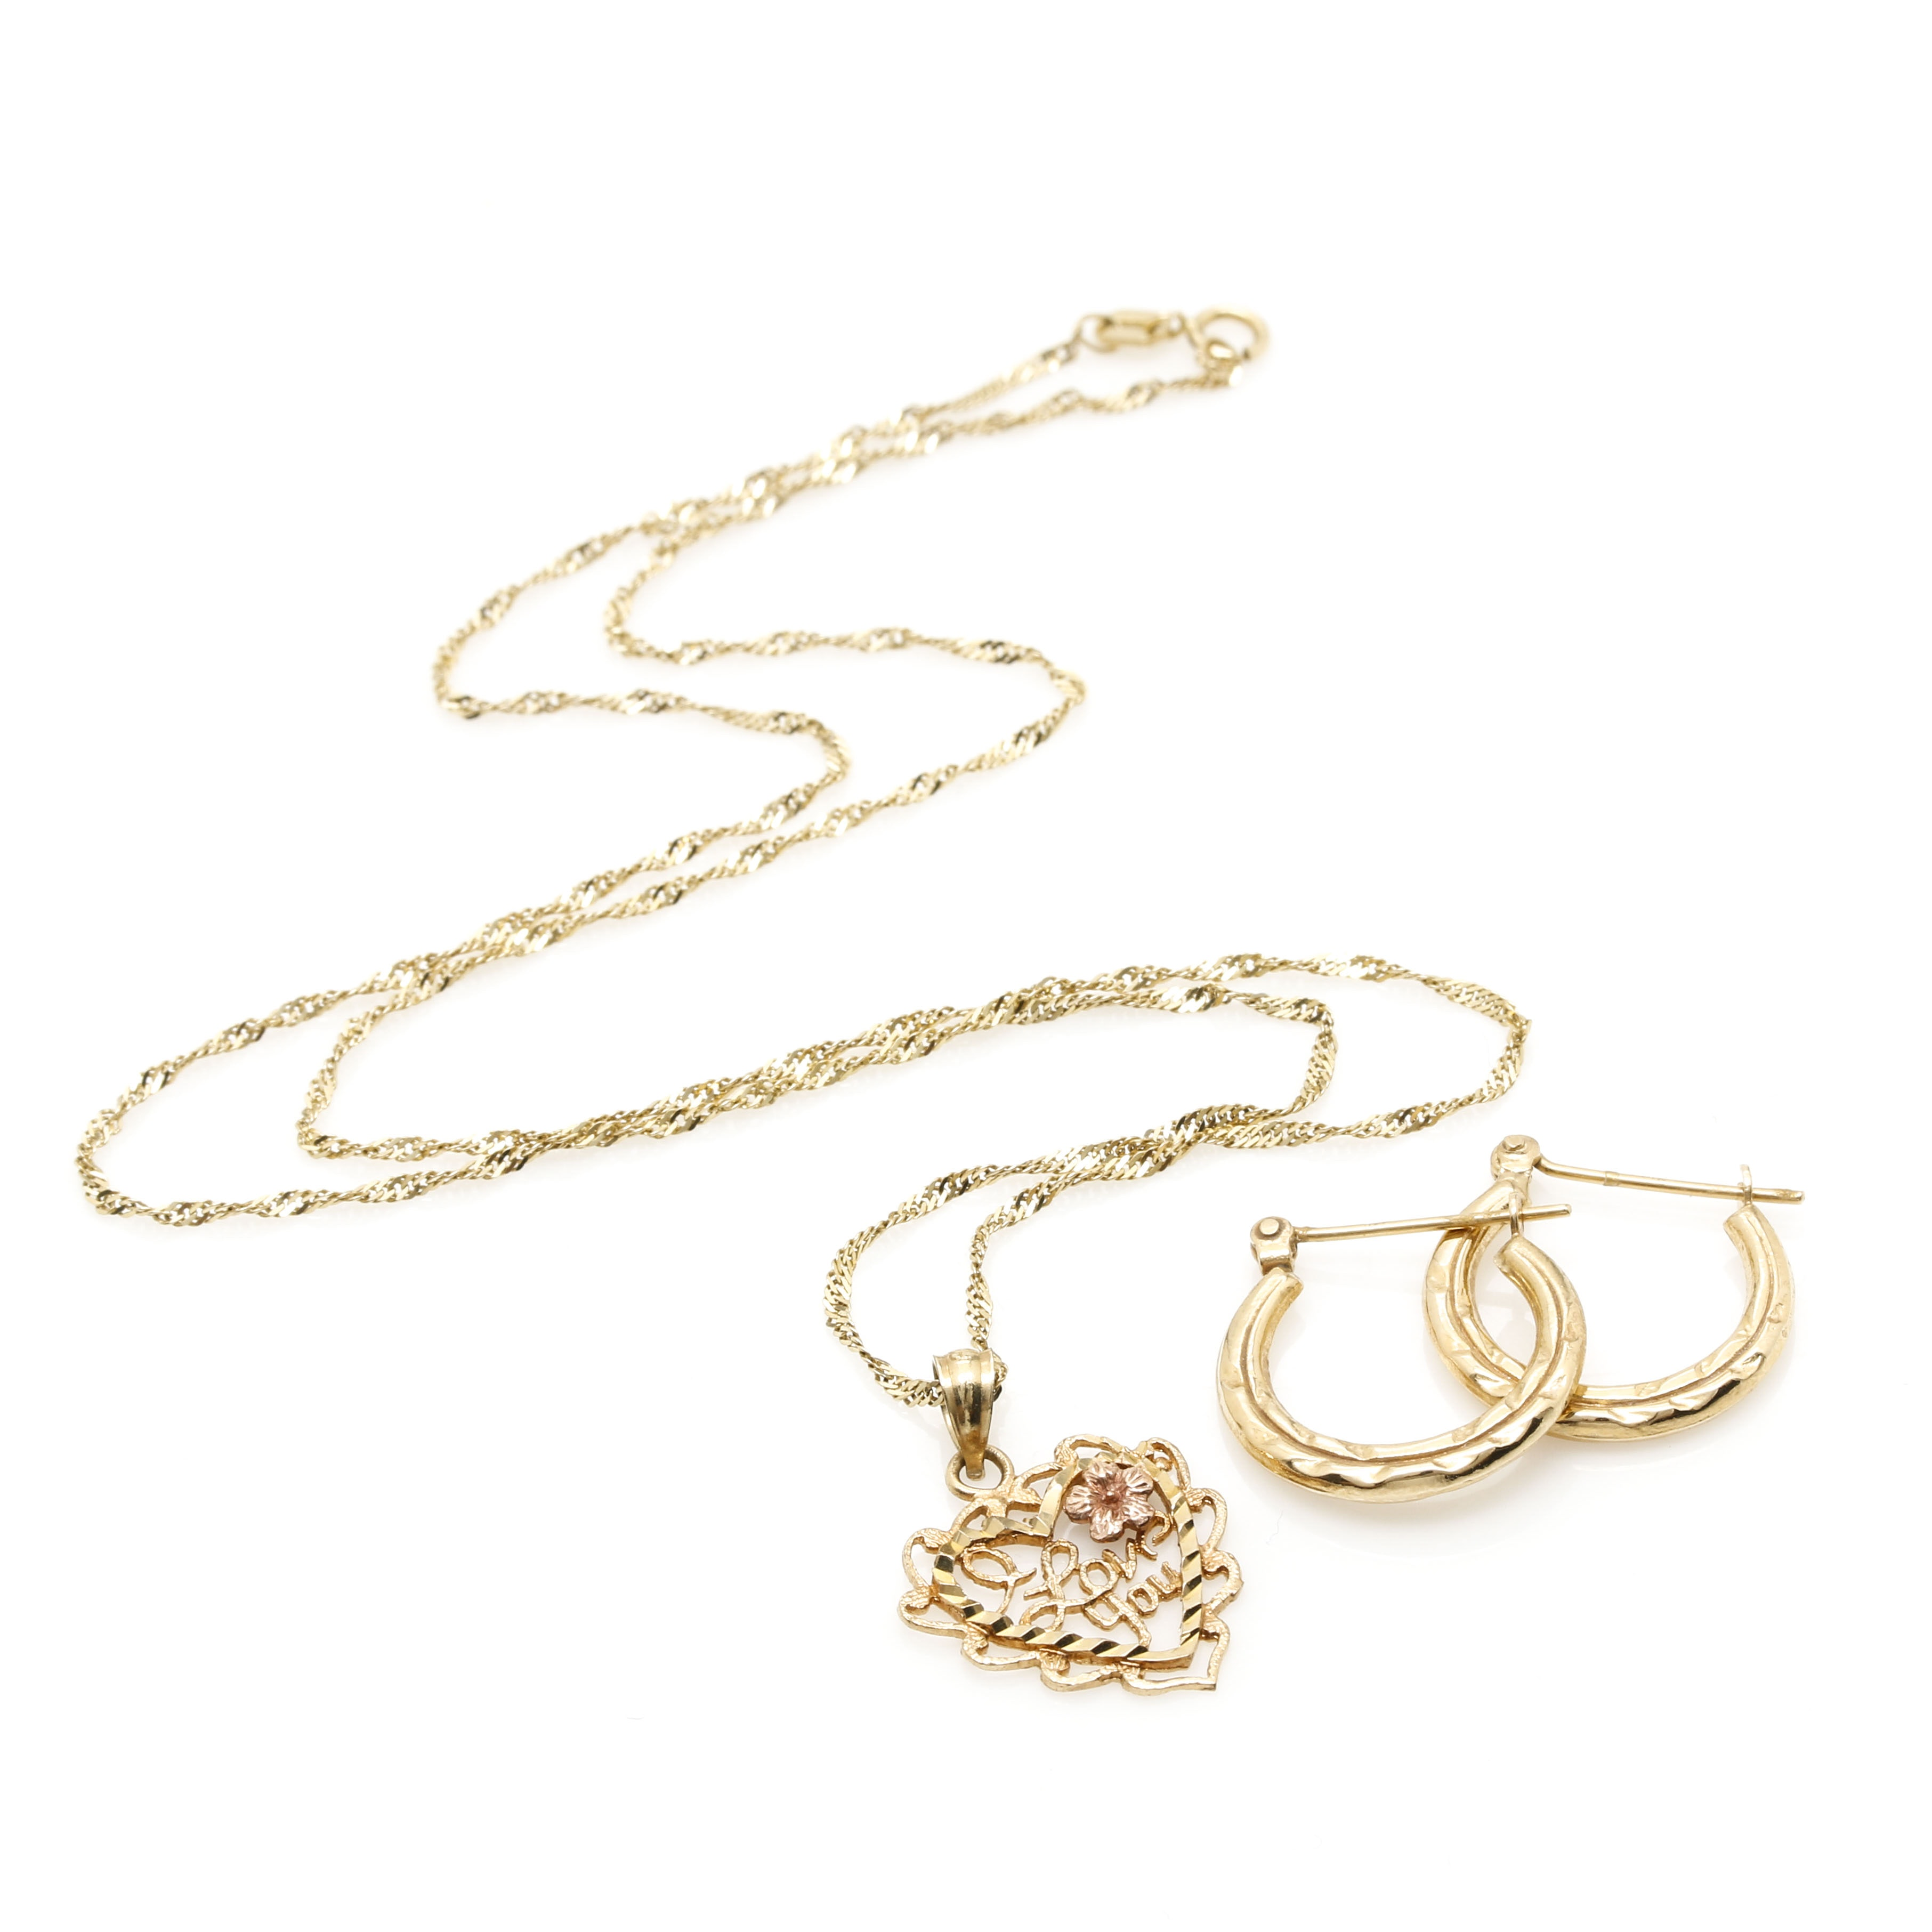 14K Yellow Gold Pendant Necklace and Hoop Earrings